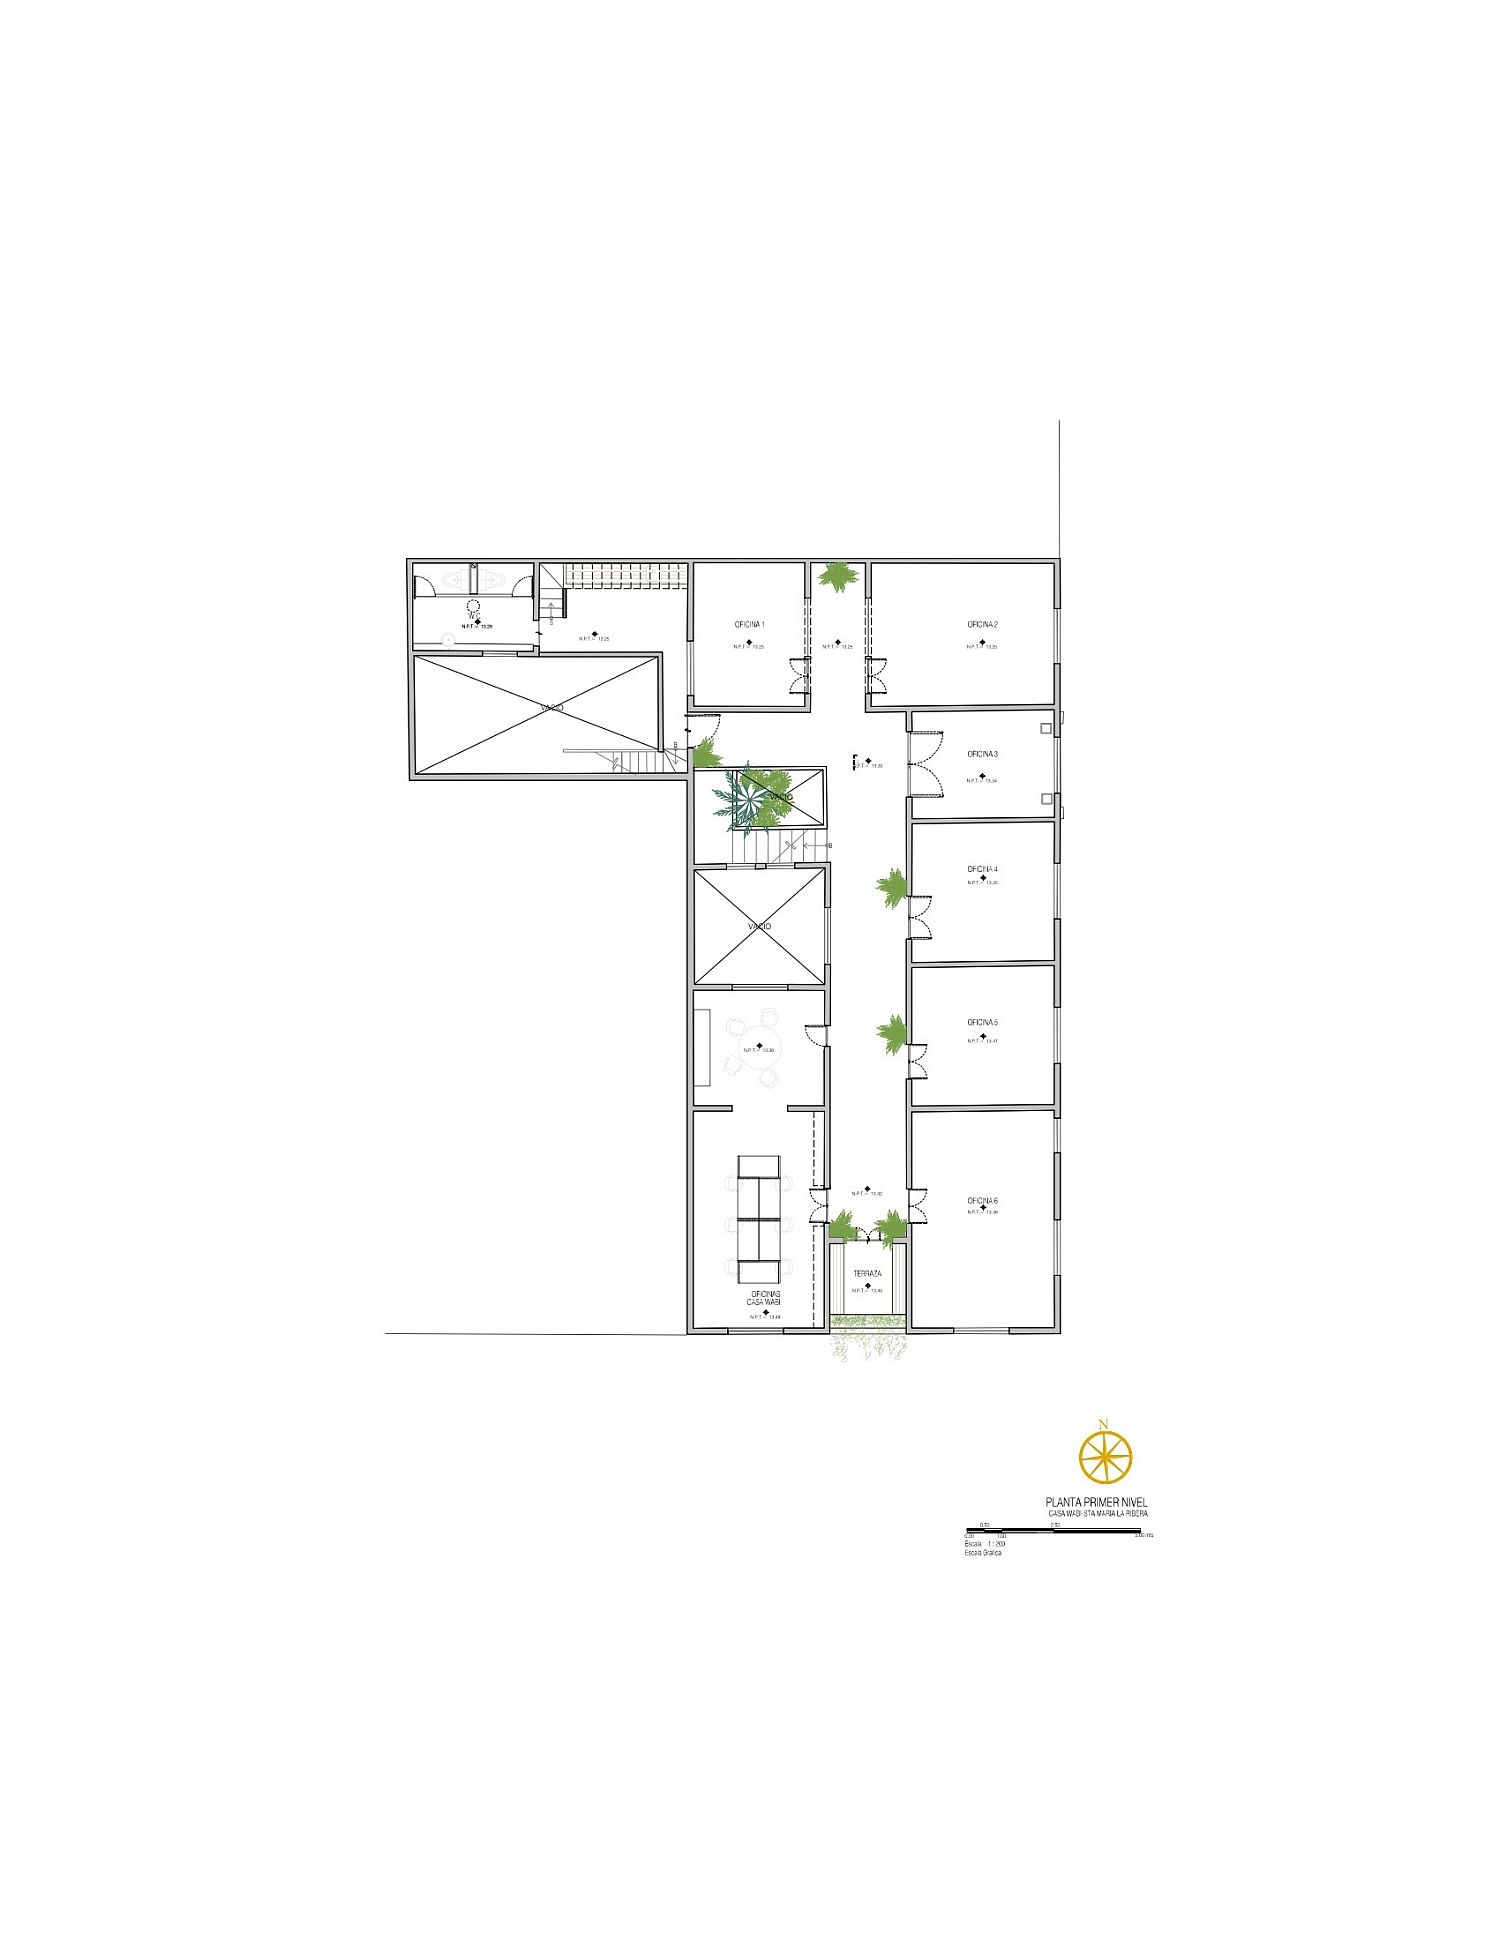 Upper level floor plan of the revamped gallery in Mexico